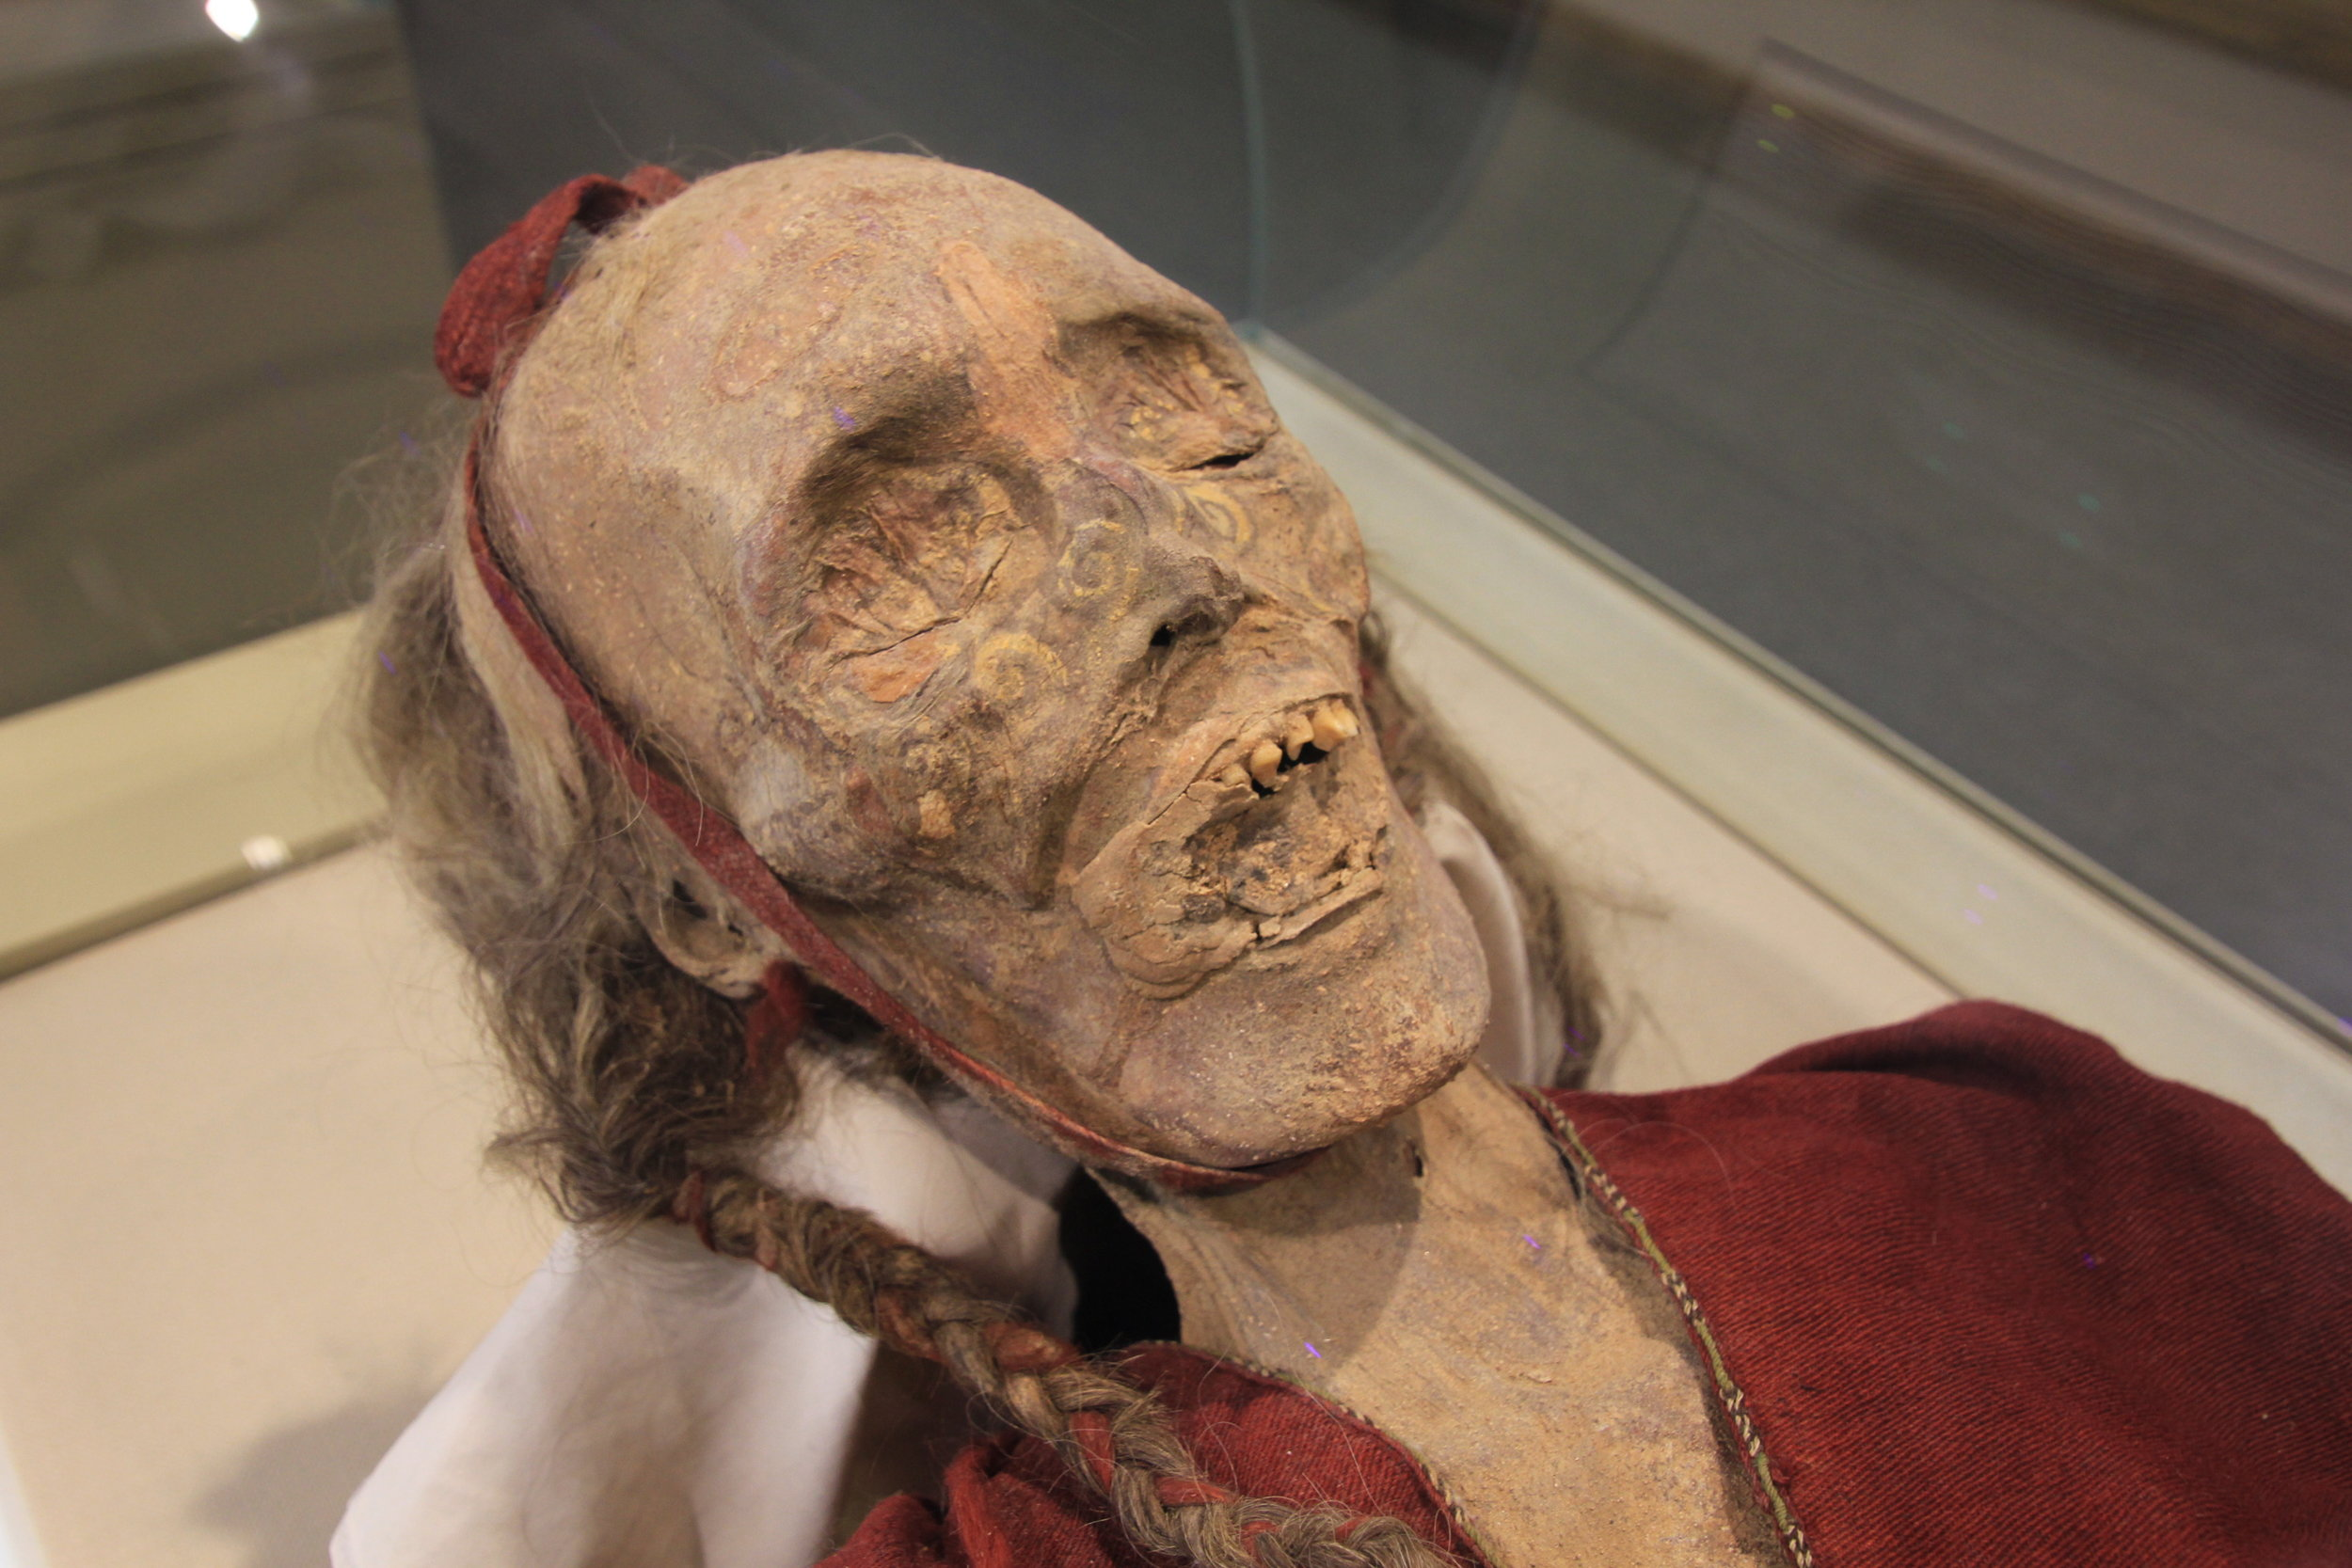 Many of the mummies have been found in very good condition, owing to the dryness of the desert and the desiccation it produced in the corpses. The mummies share many typical Caucasian body features (elongated bodies, angular faces, recessed eyes), and many of them have their hair physically intact, ranging in color from blond to red to deep brown